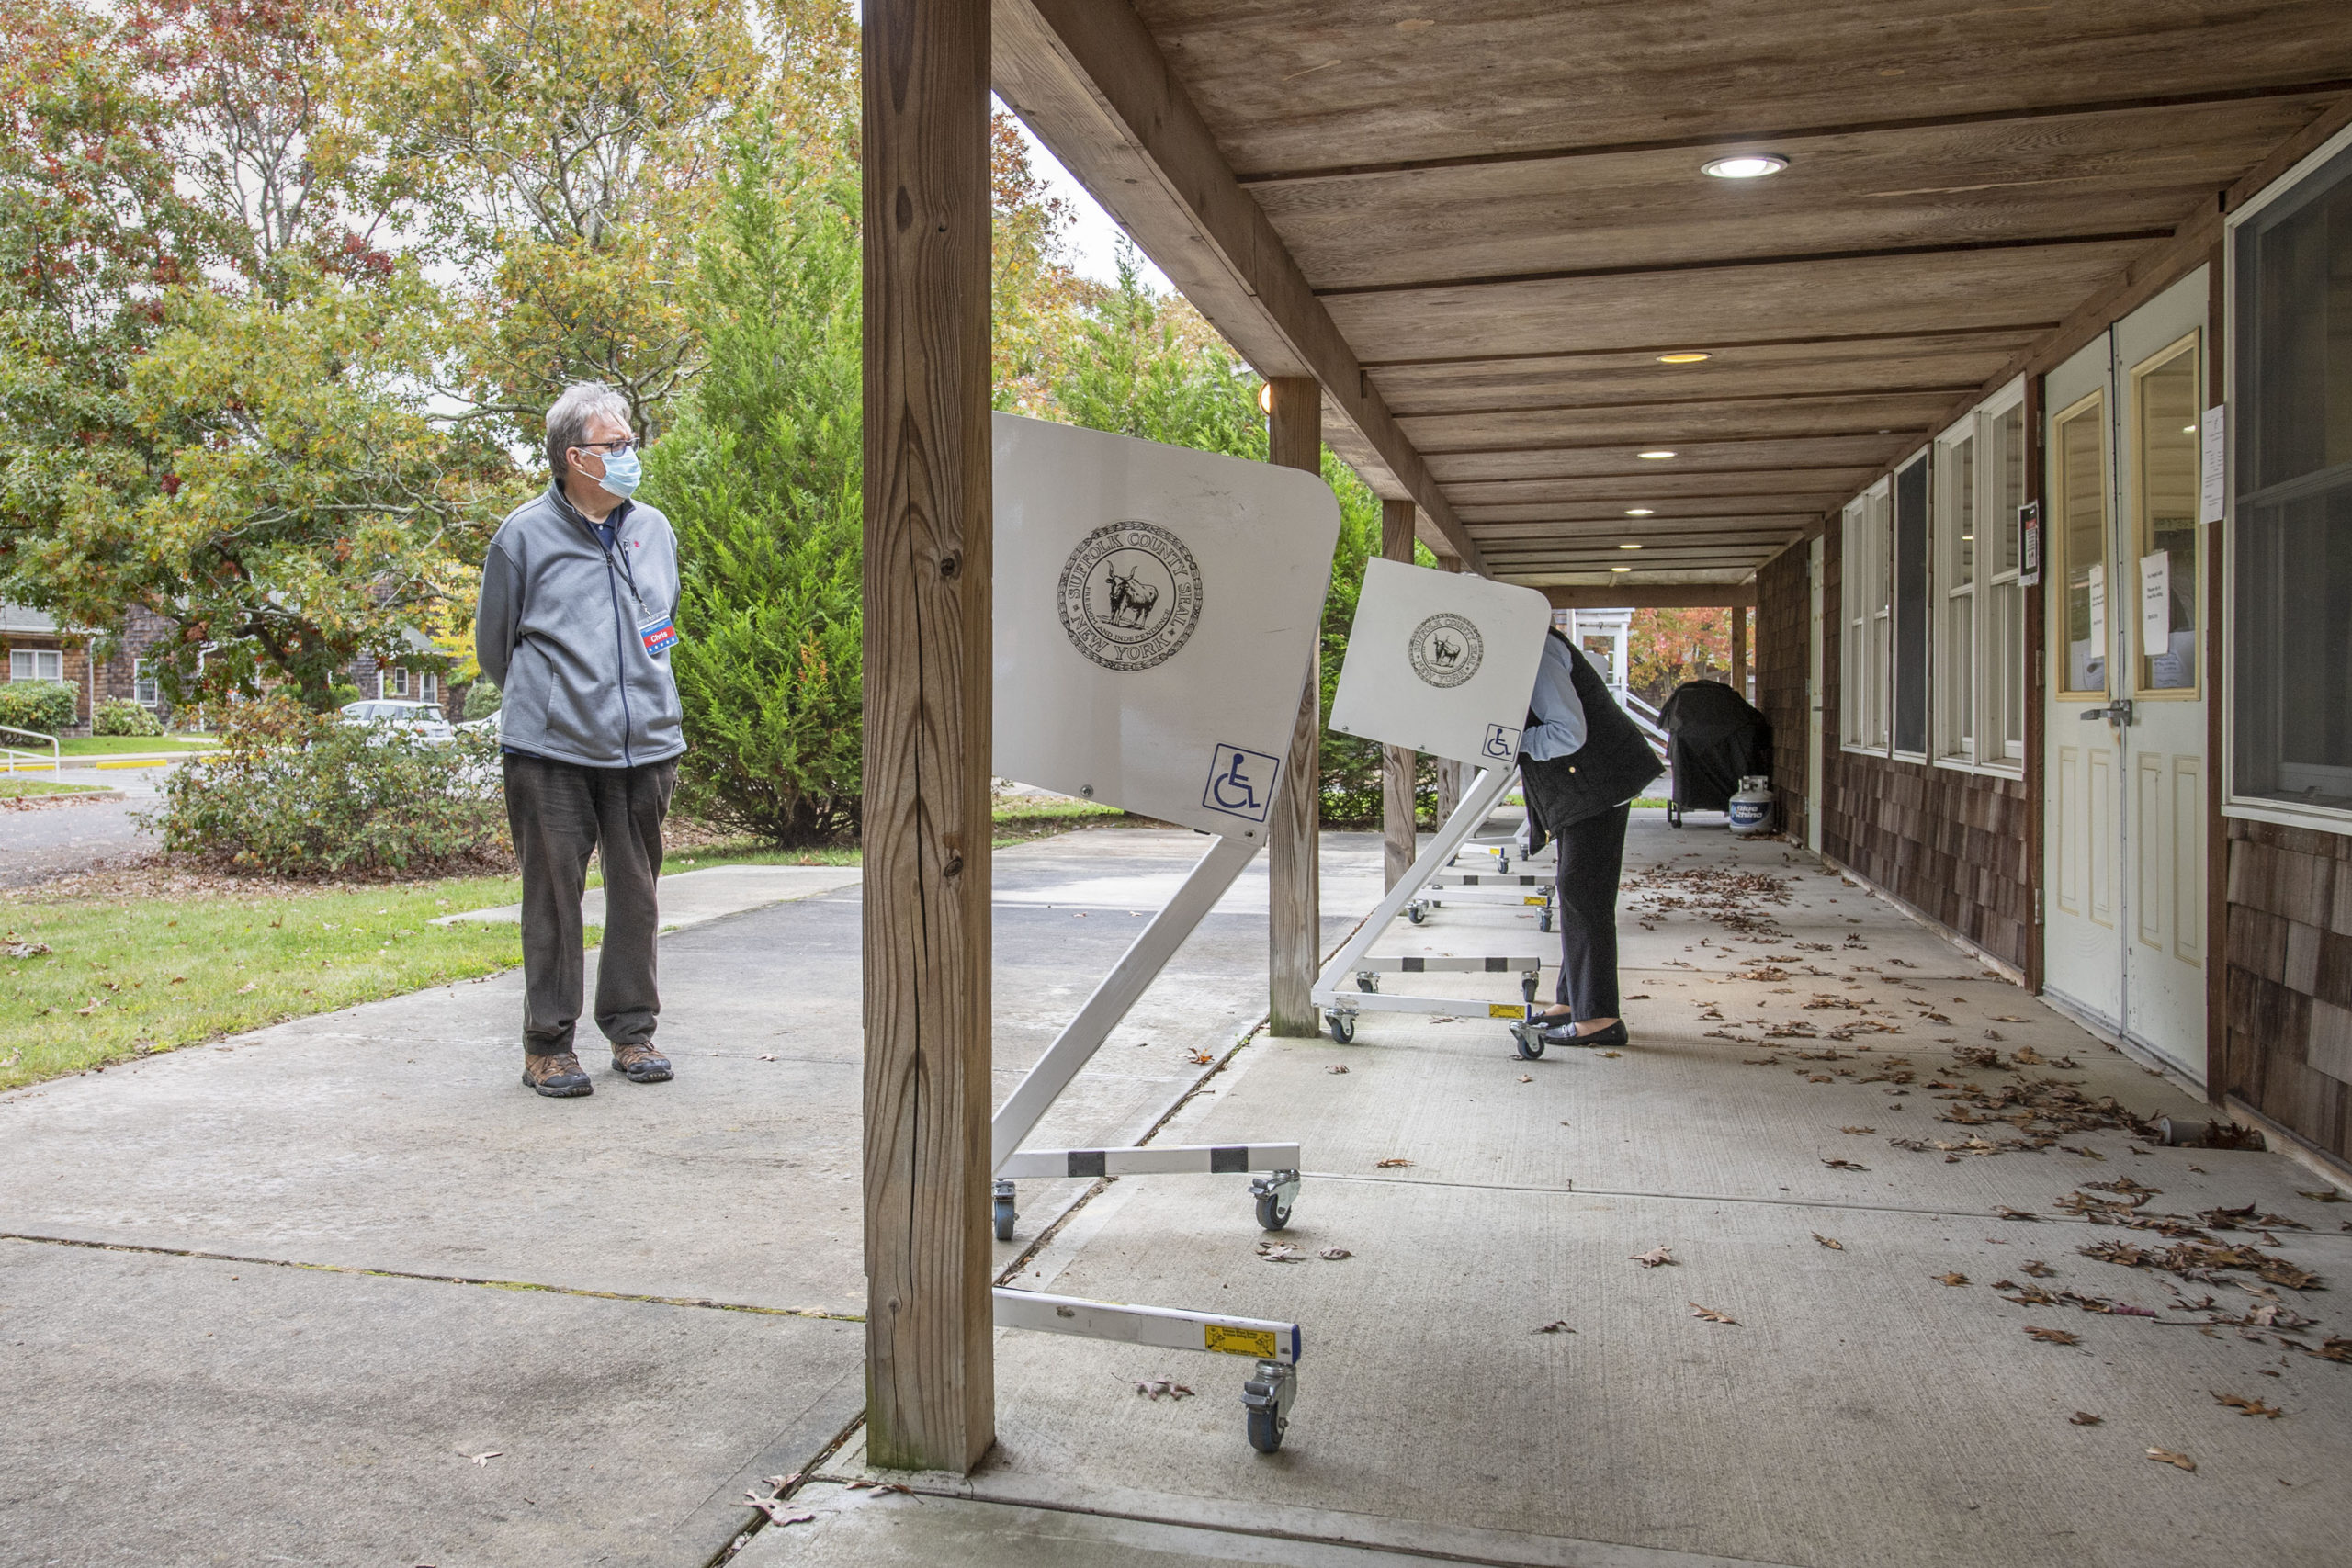 A polling inspector keeps a watchful eye as voters cast their ballots as part of Early Voting in East Hampton Town at the Windmill Village complex on Accabonac Road on Monday morning.   MICHAEL HELLER